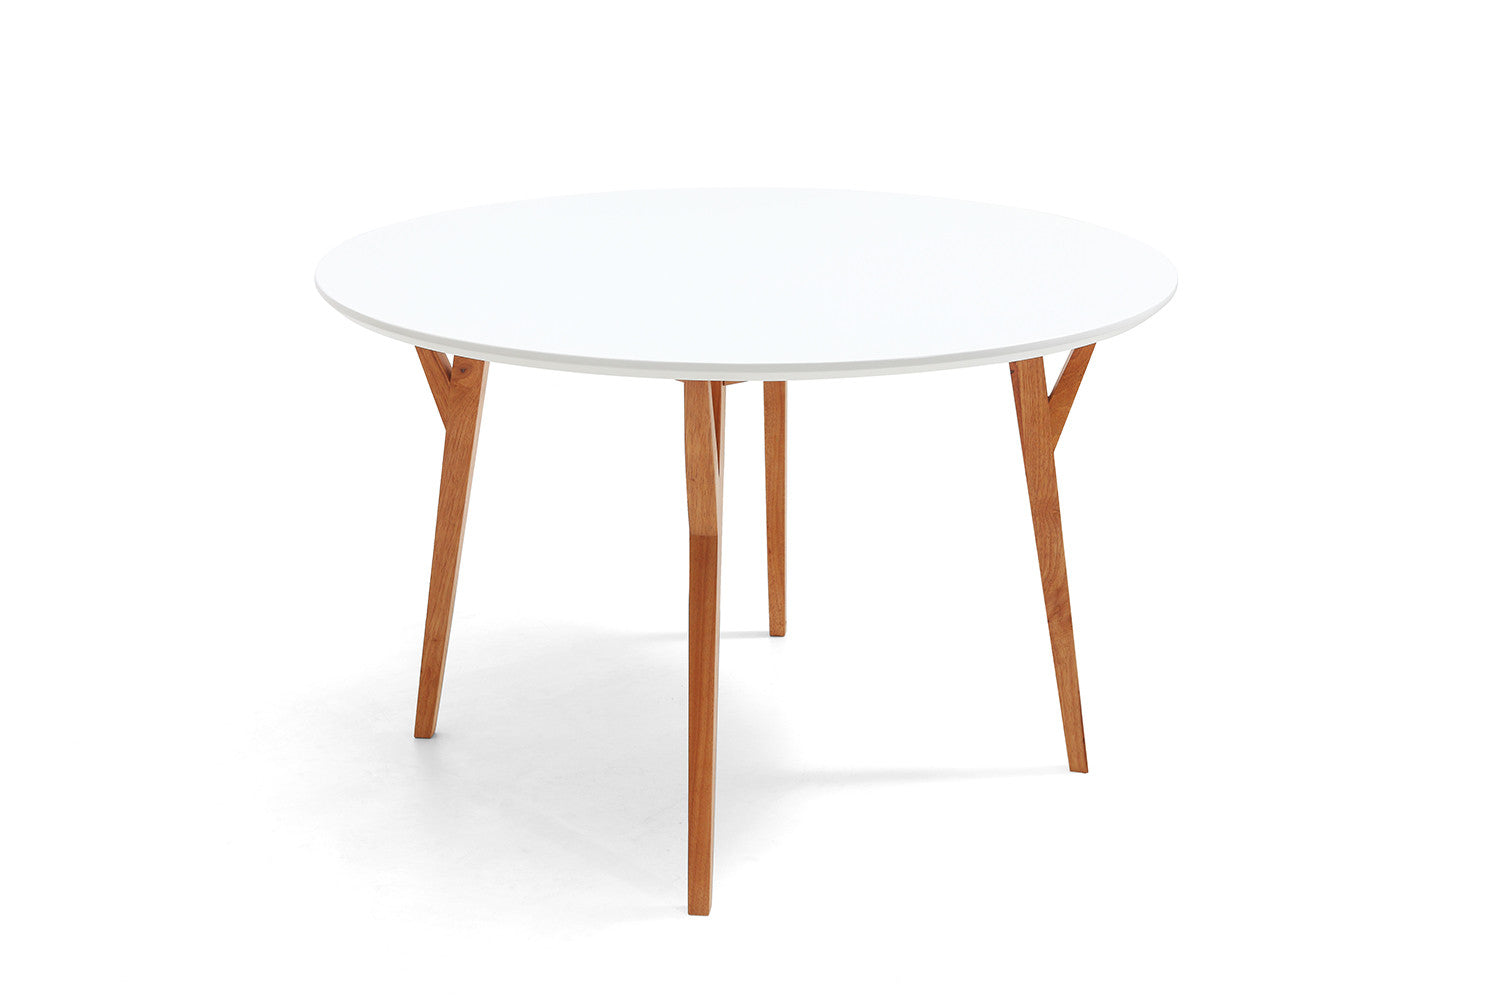 Table de salle manger ronde design scandinave moesa for Table a rallonge design scandinave